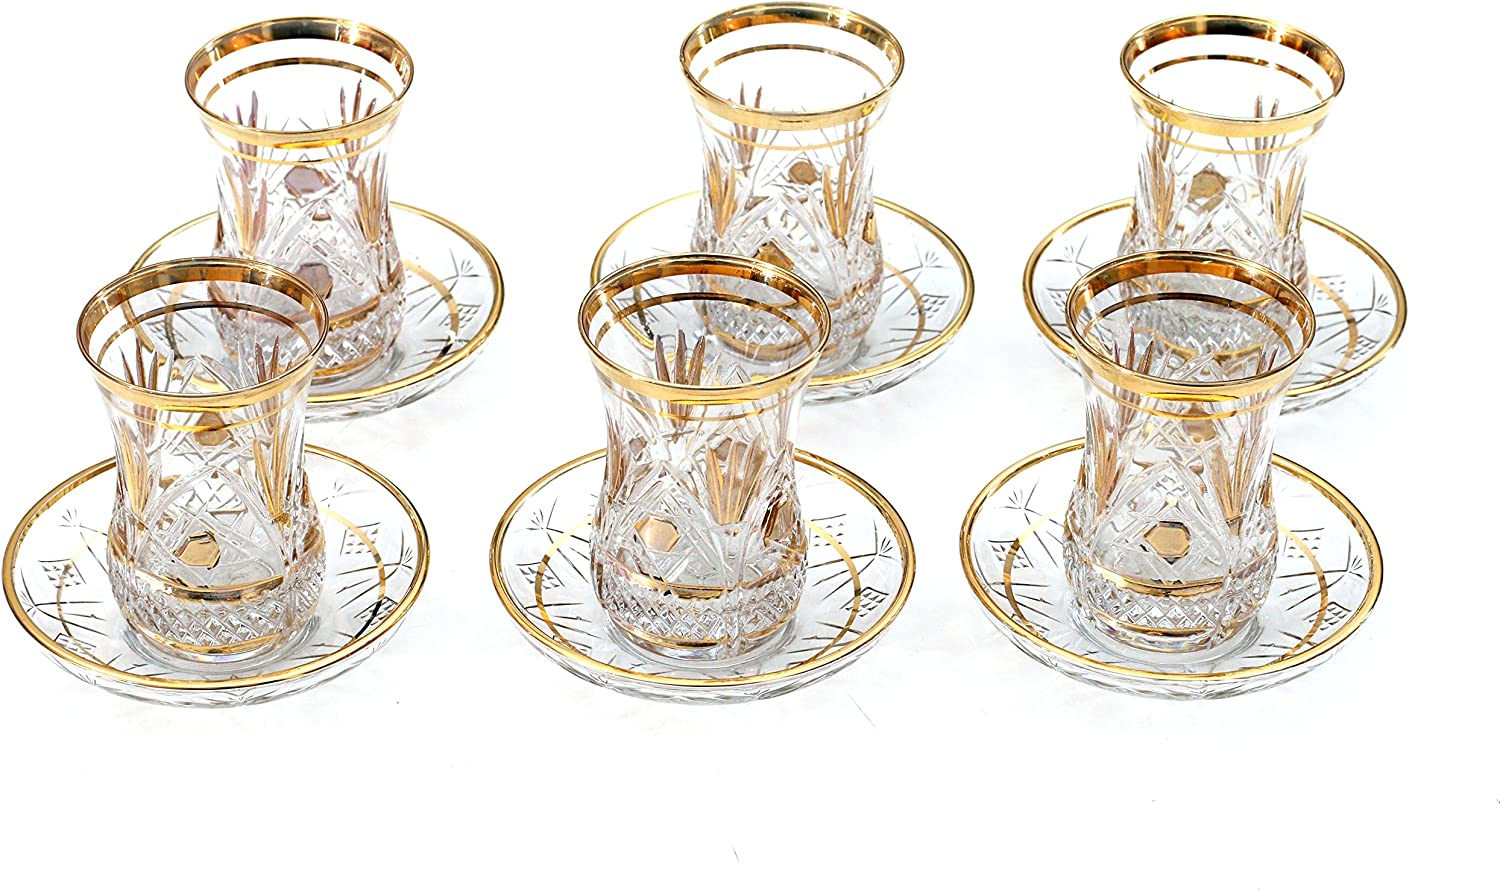 Gold 24 Pieces Harman Turkish Tea Cups Saucers Set With Spoons, For 6 Person